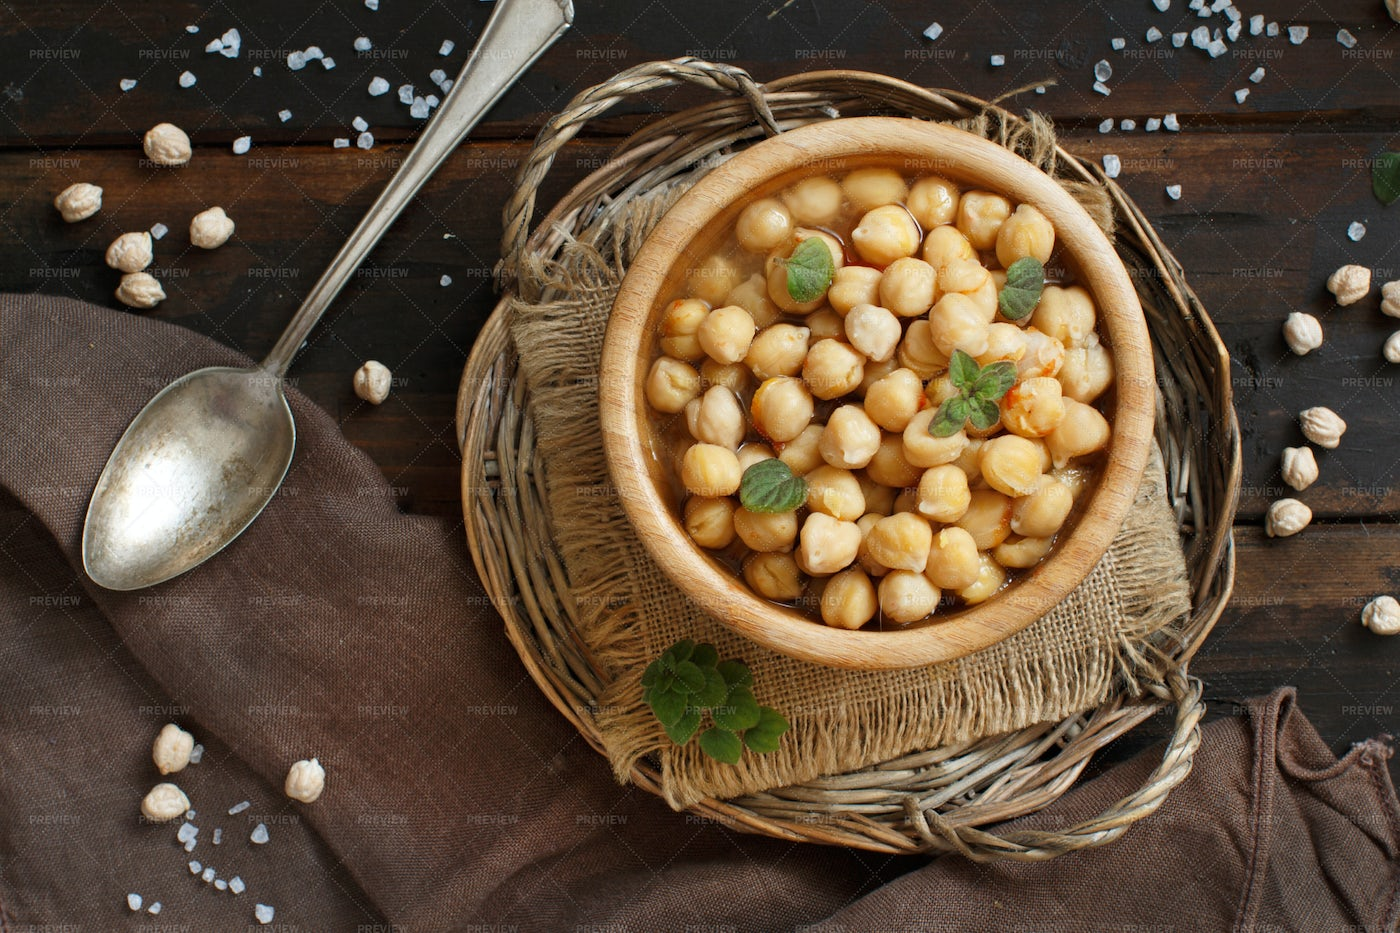 Chickpea Stew With Vegetables: Stock Photos